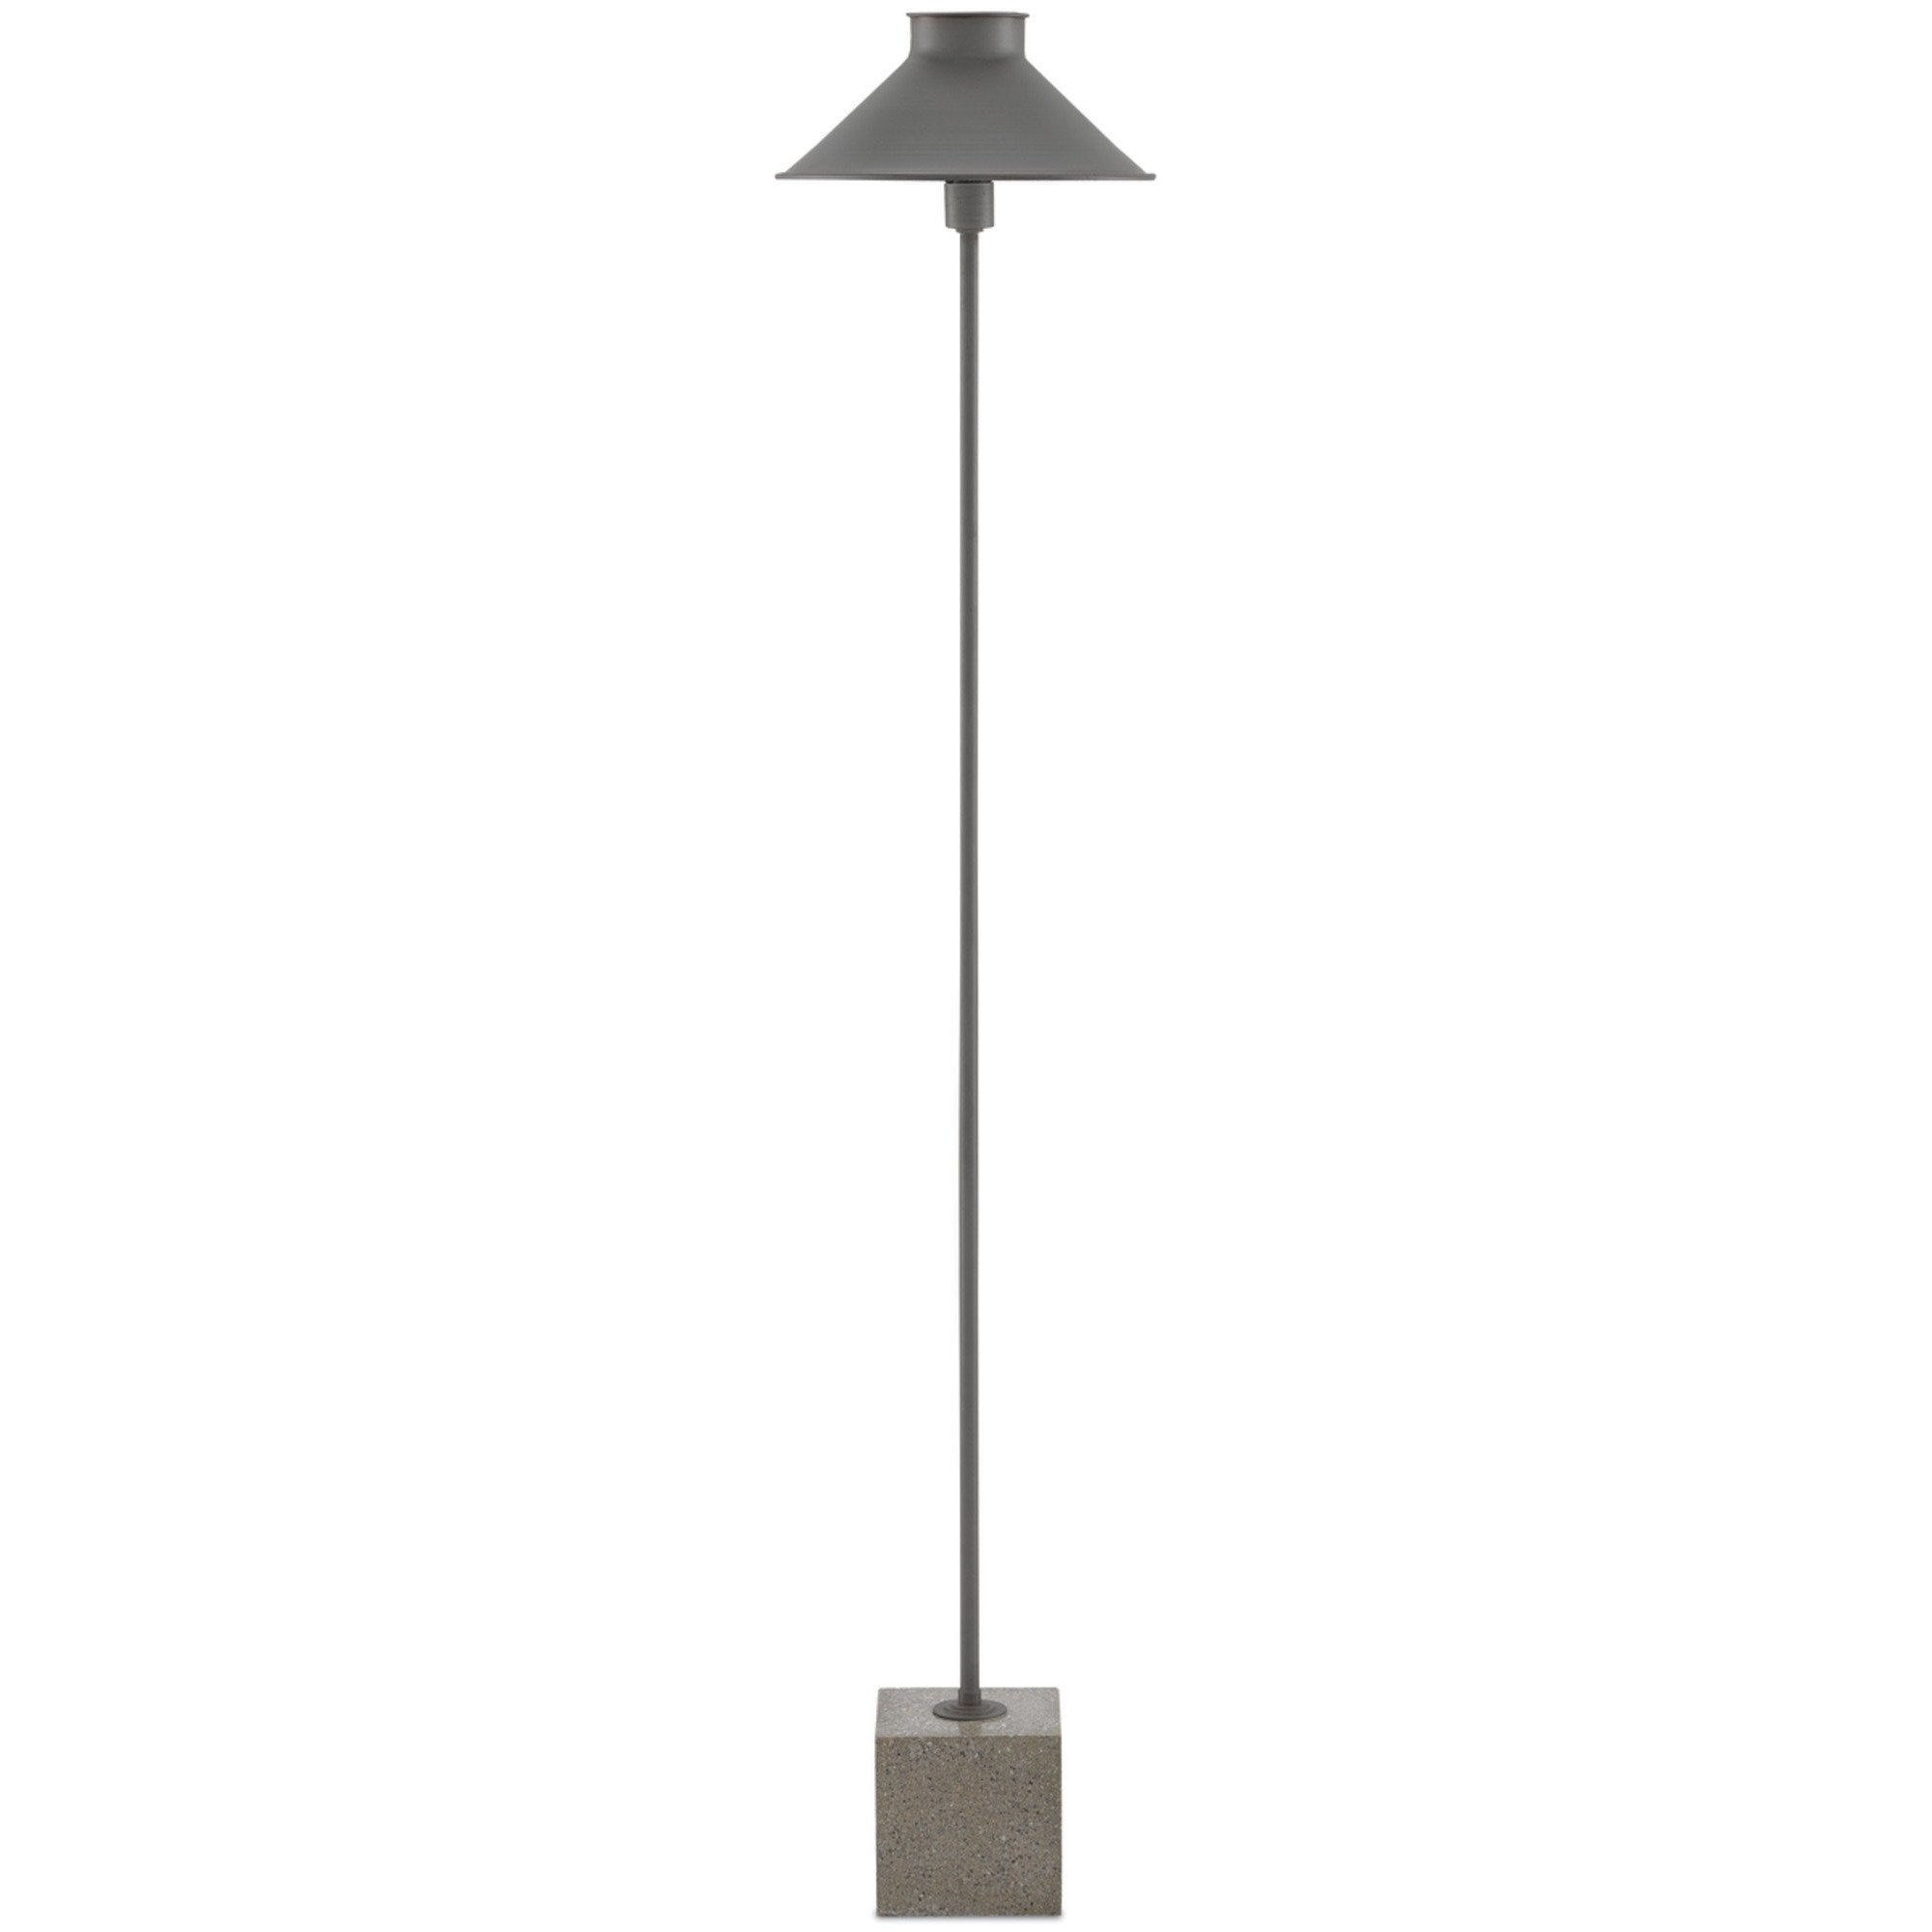 Currey and Company Suzu Floor Lamp 8000-0017 - LOVECUP